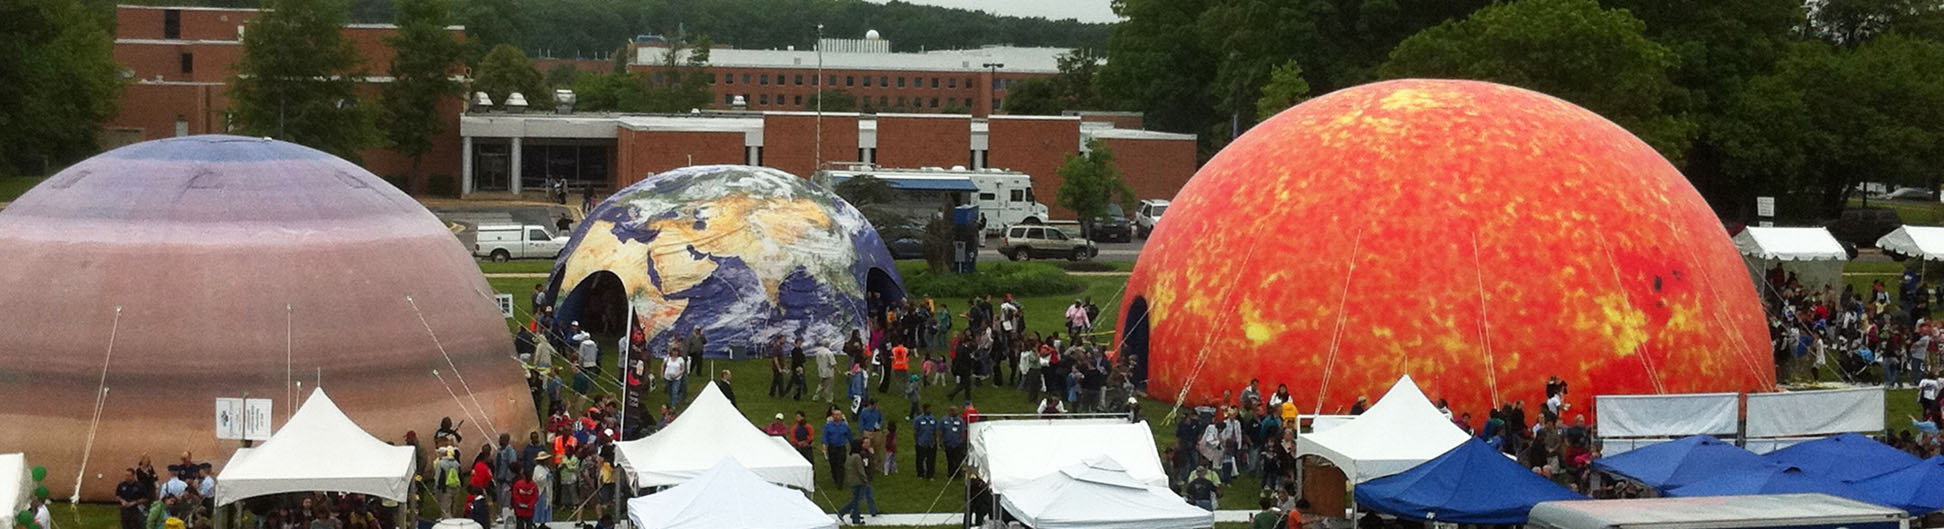 printed-inflatable-dome-tents-v3.jpg